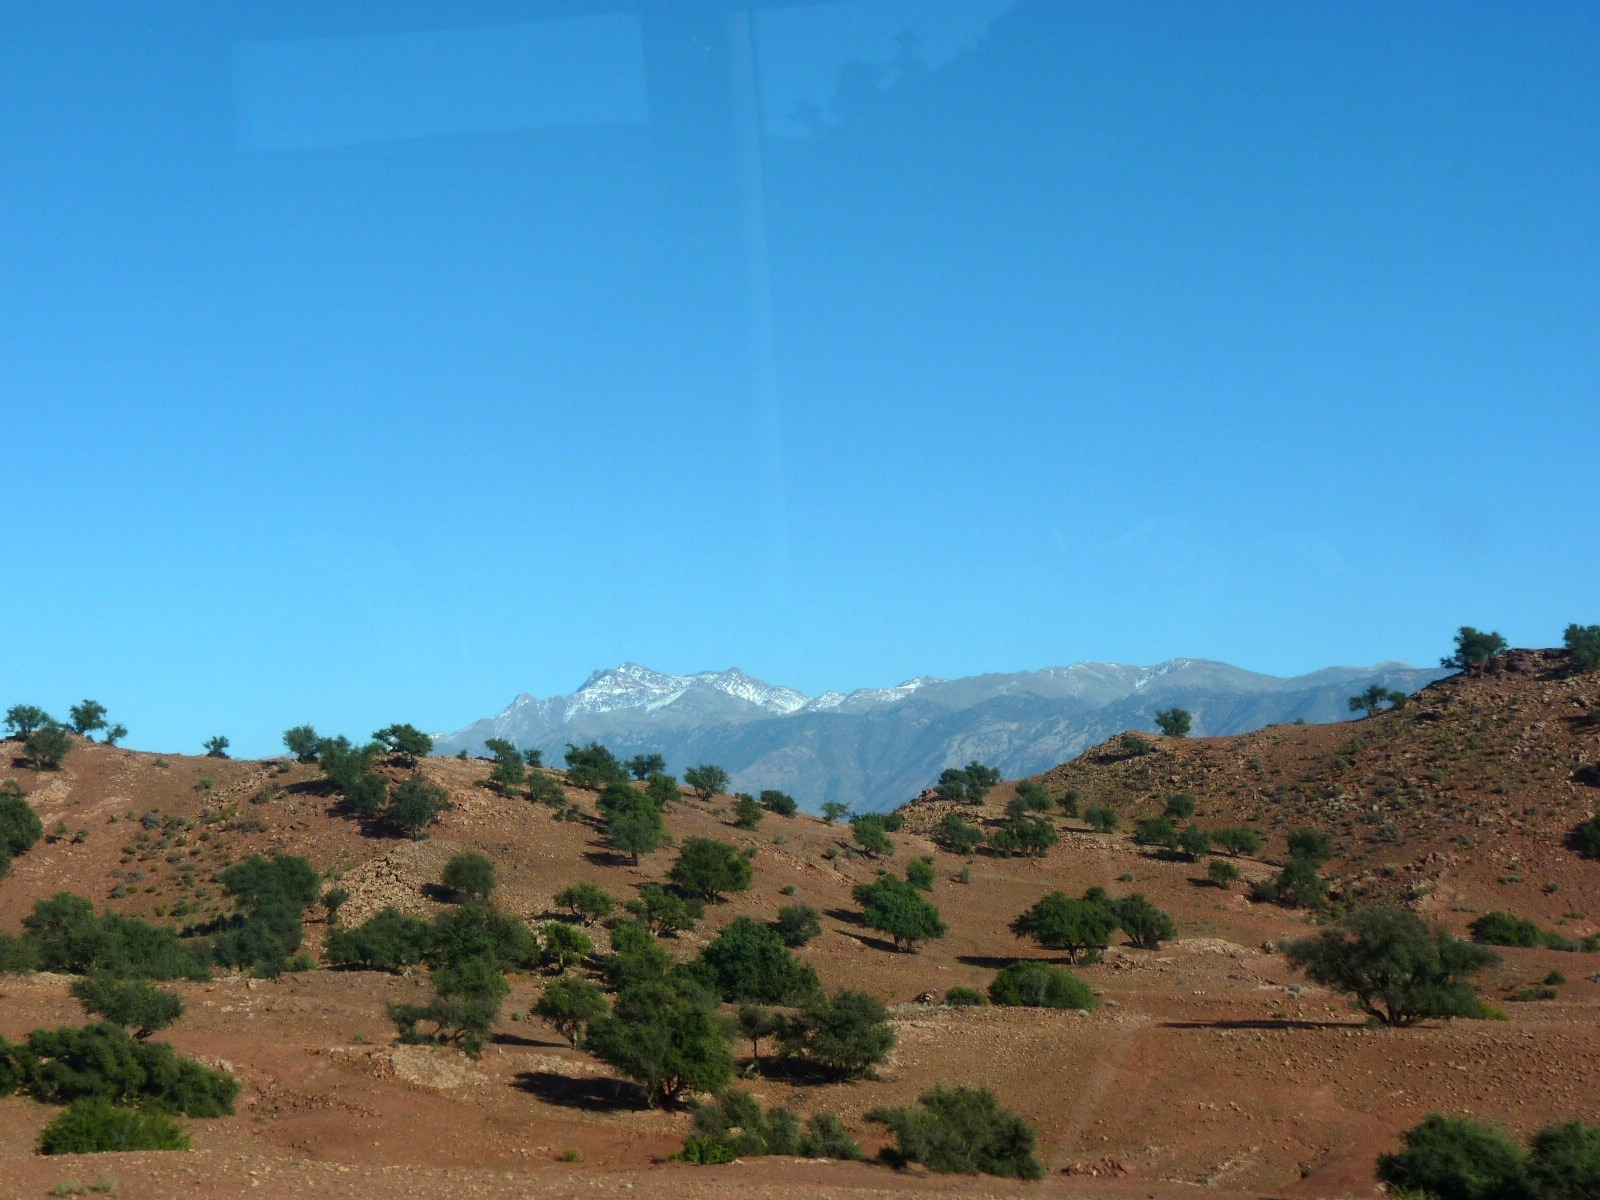 On the way to Marrakesh